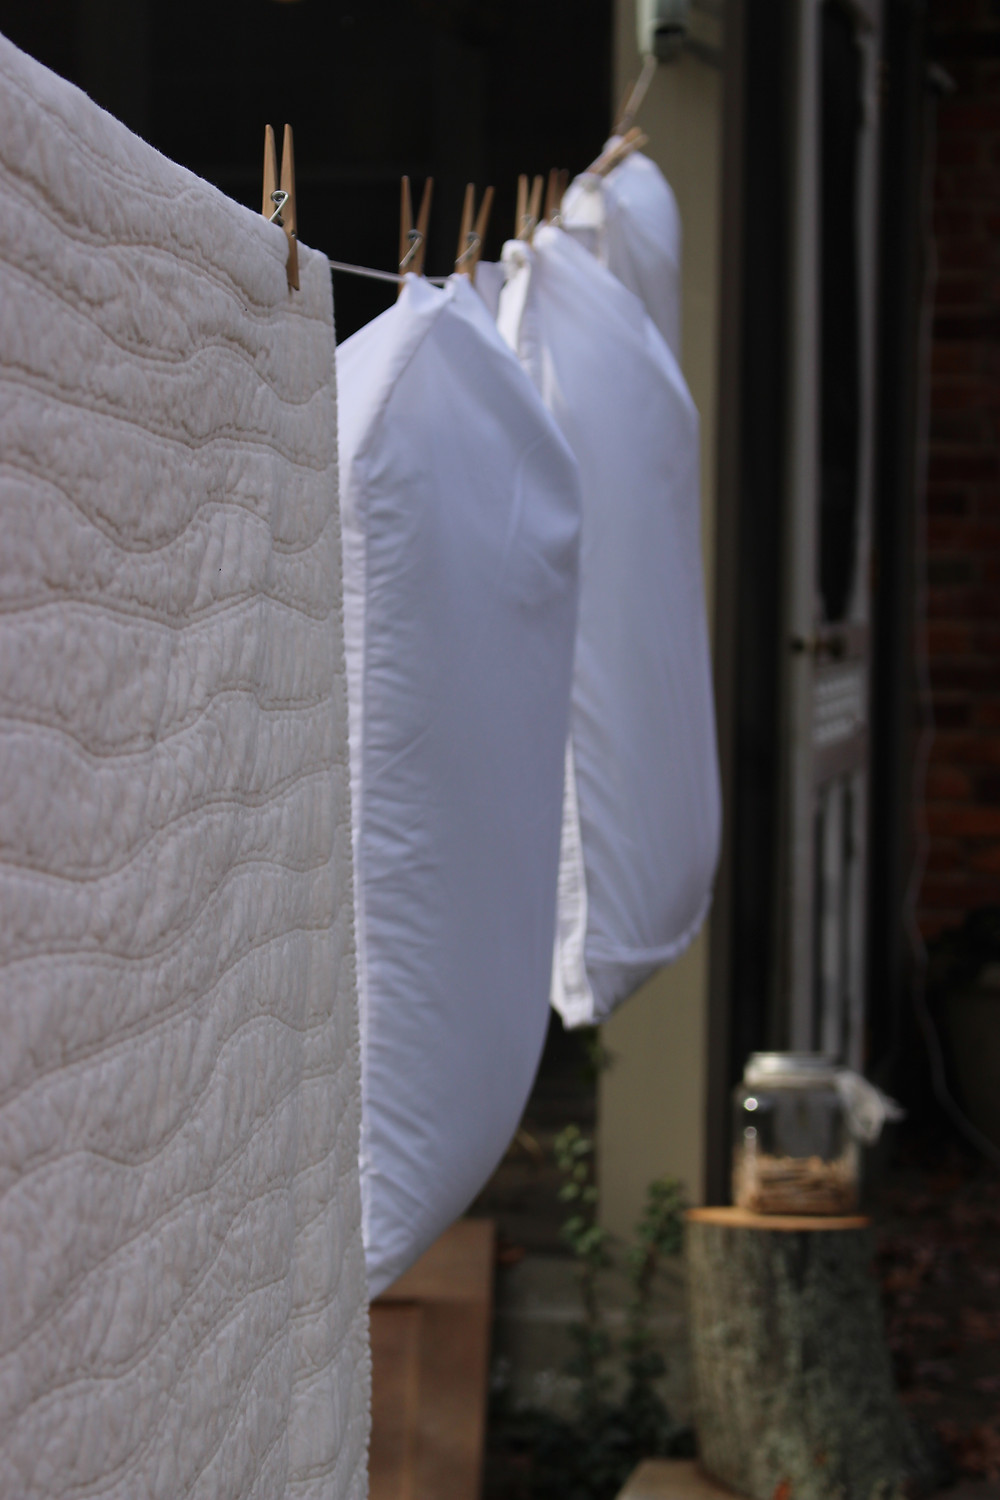 Airing Bedding on a Line